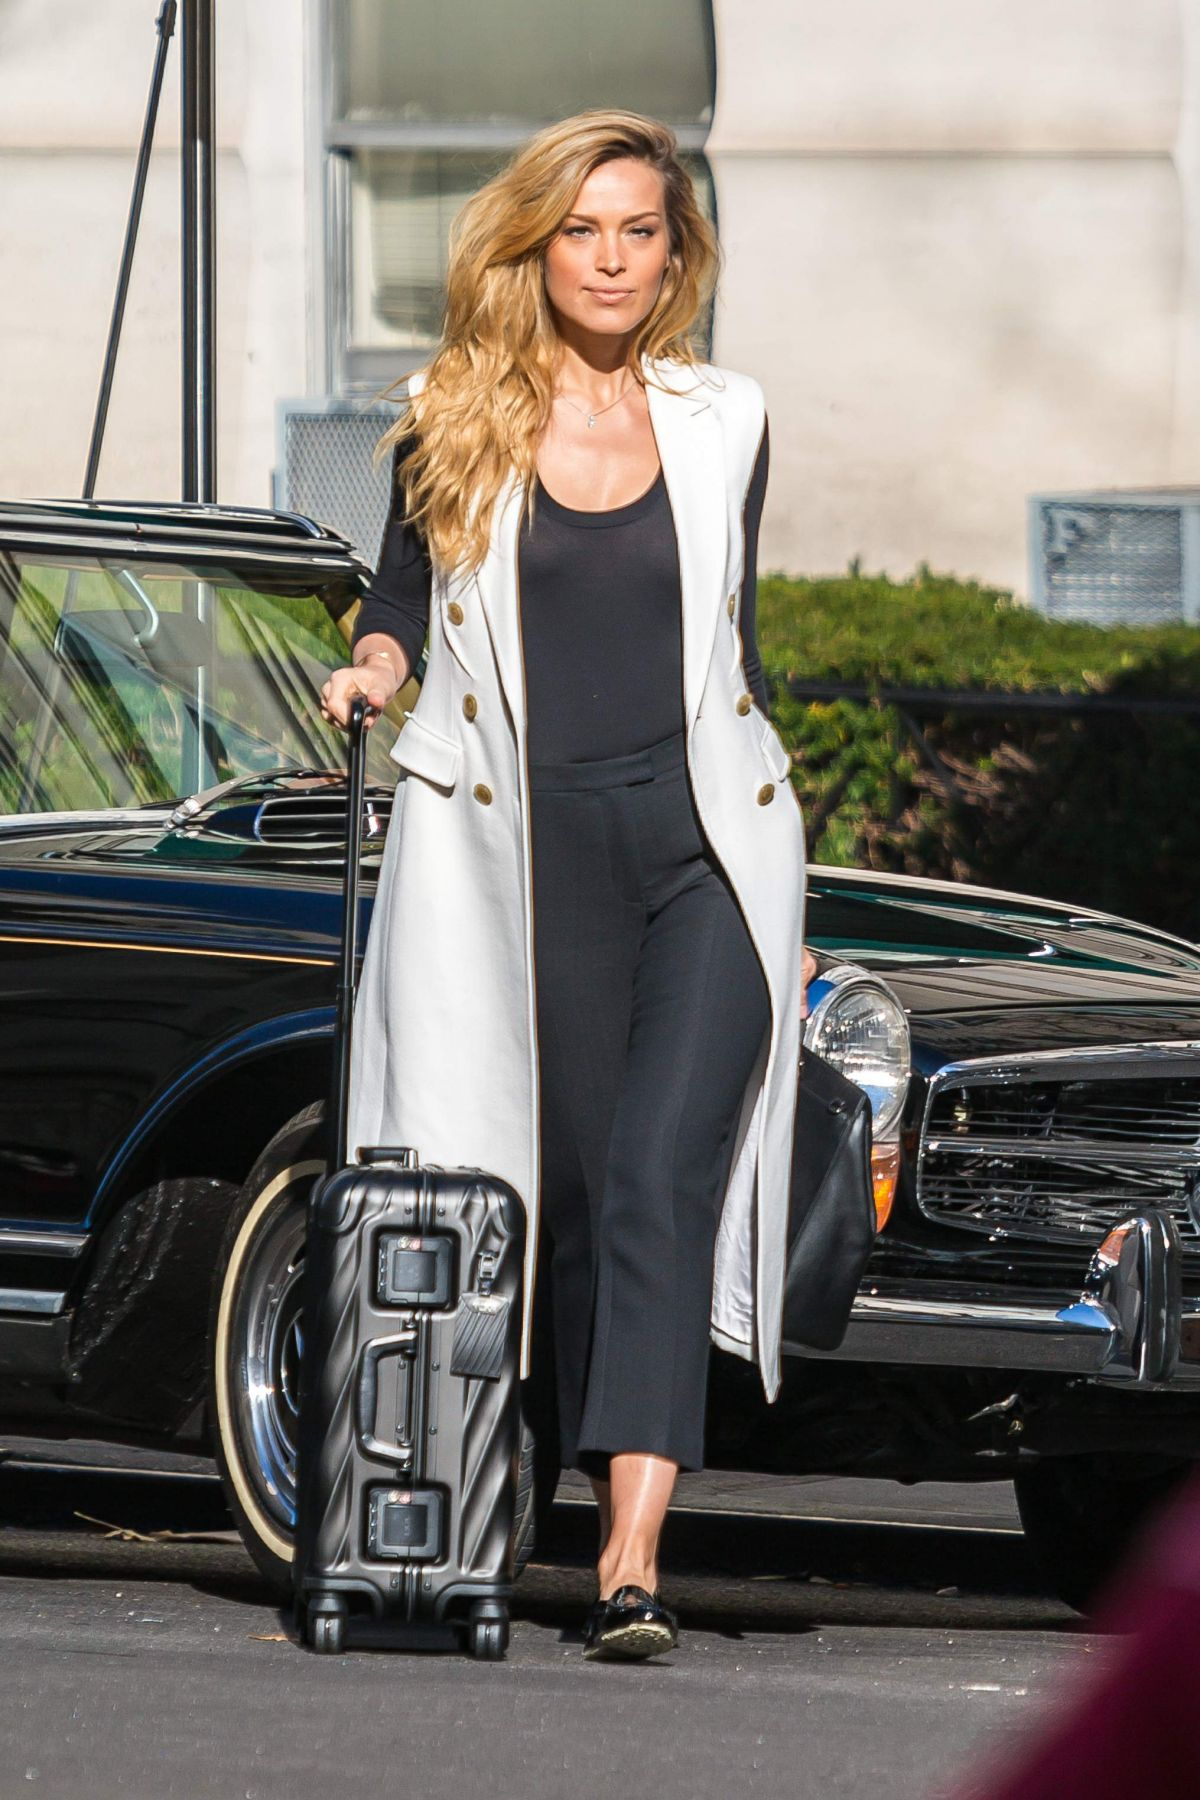 PETRA NEMCOVA on the Set of a Photoshoot in New York 12/14/2016